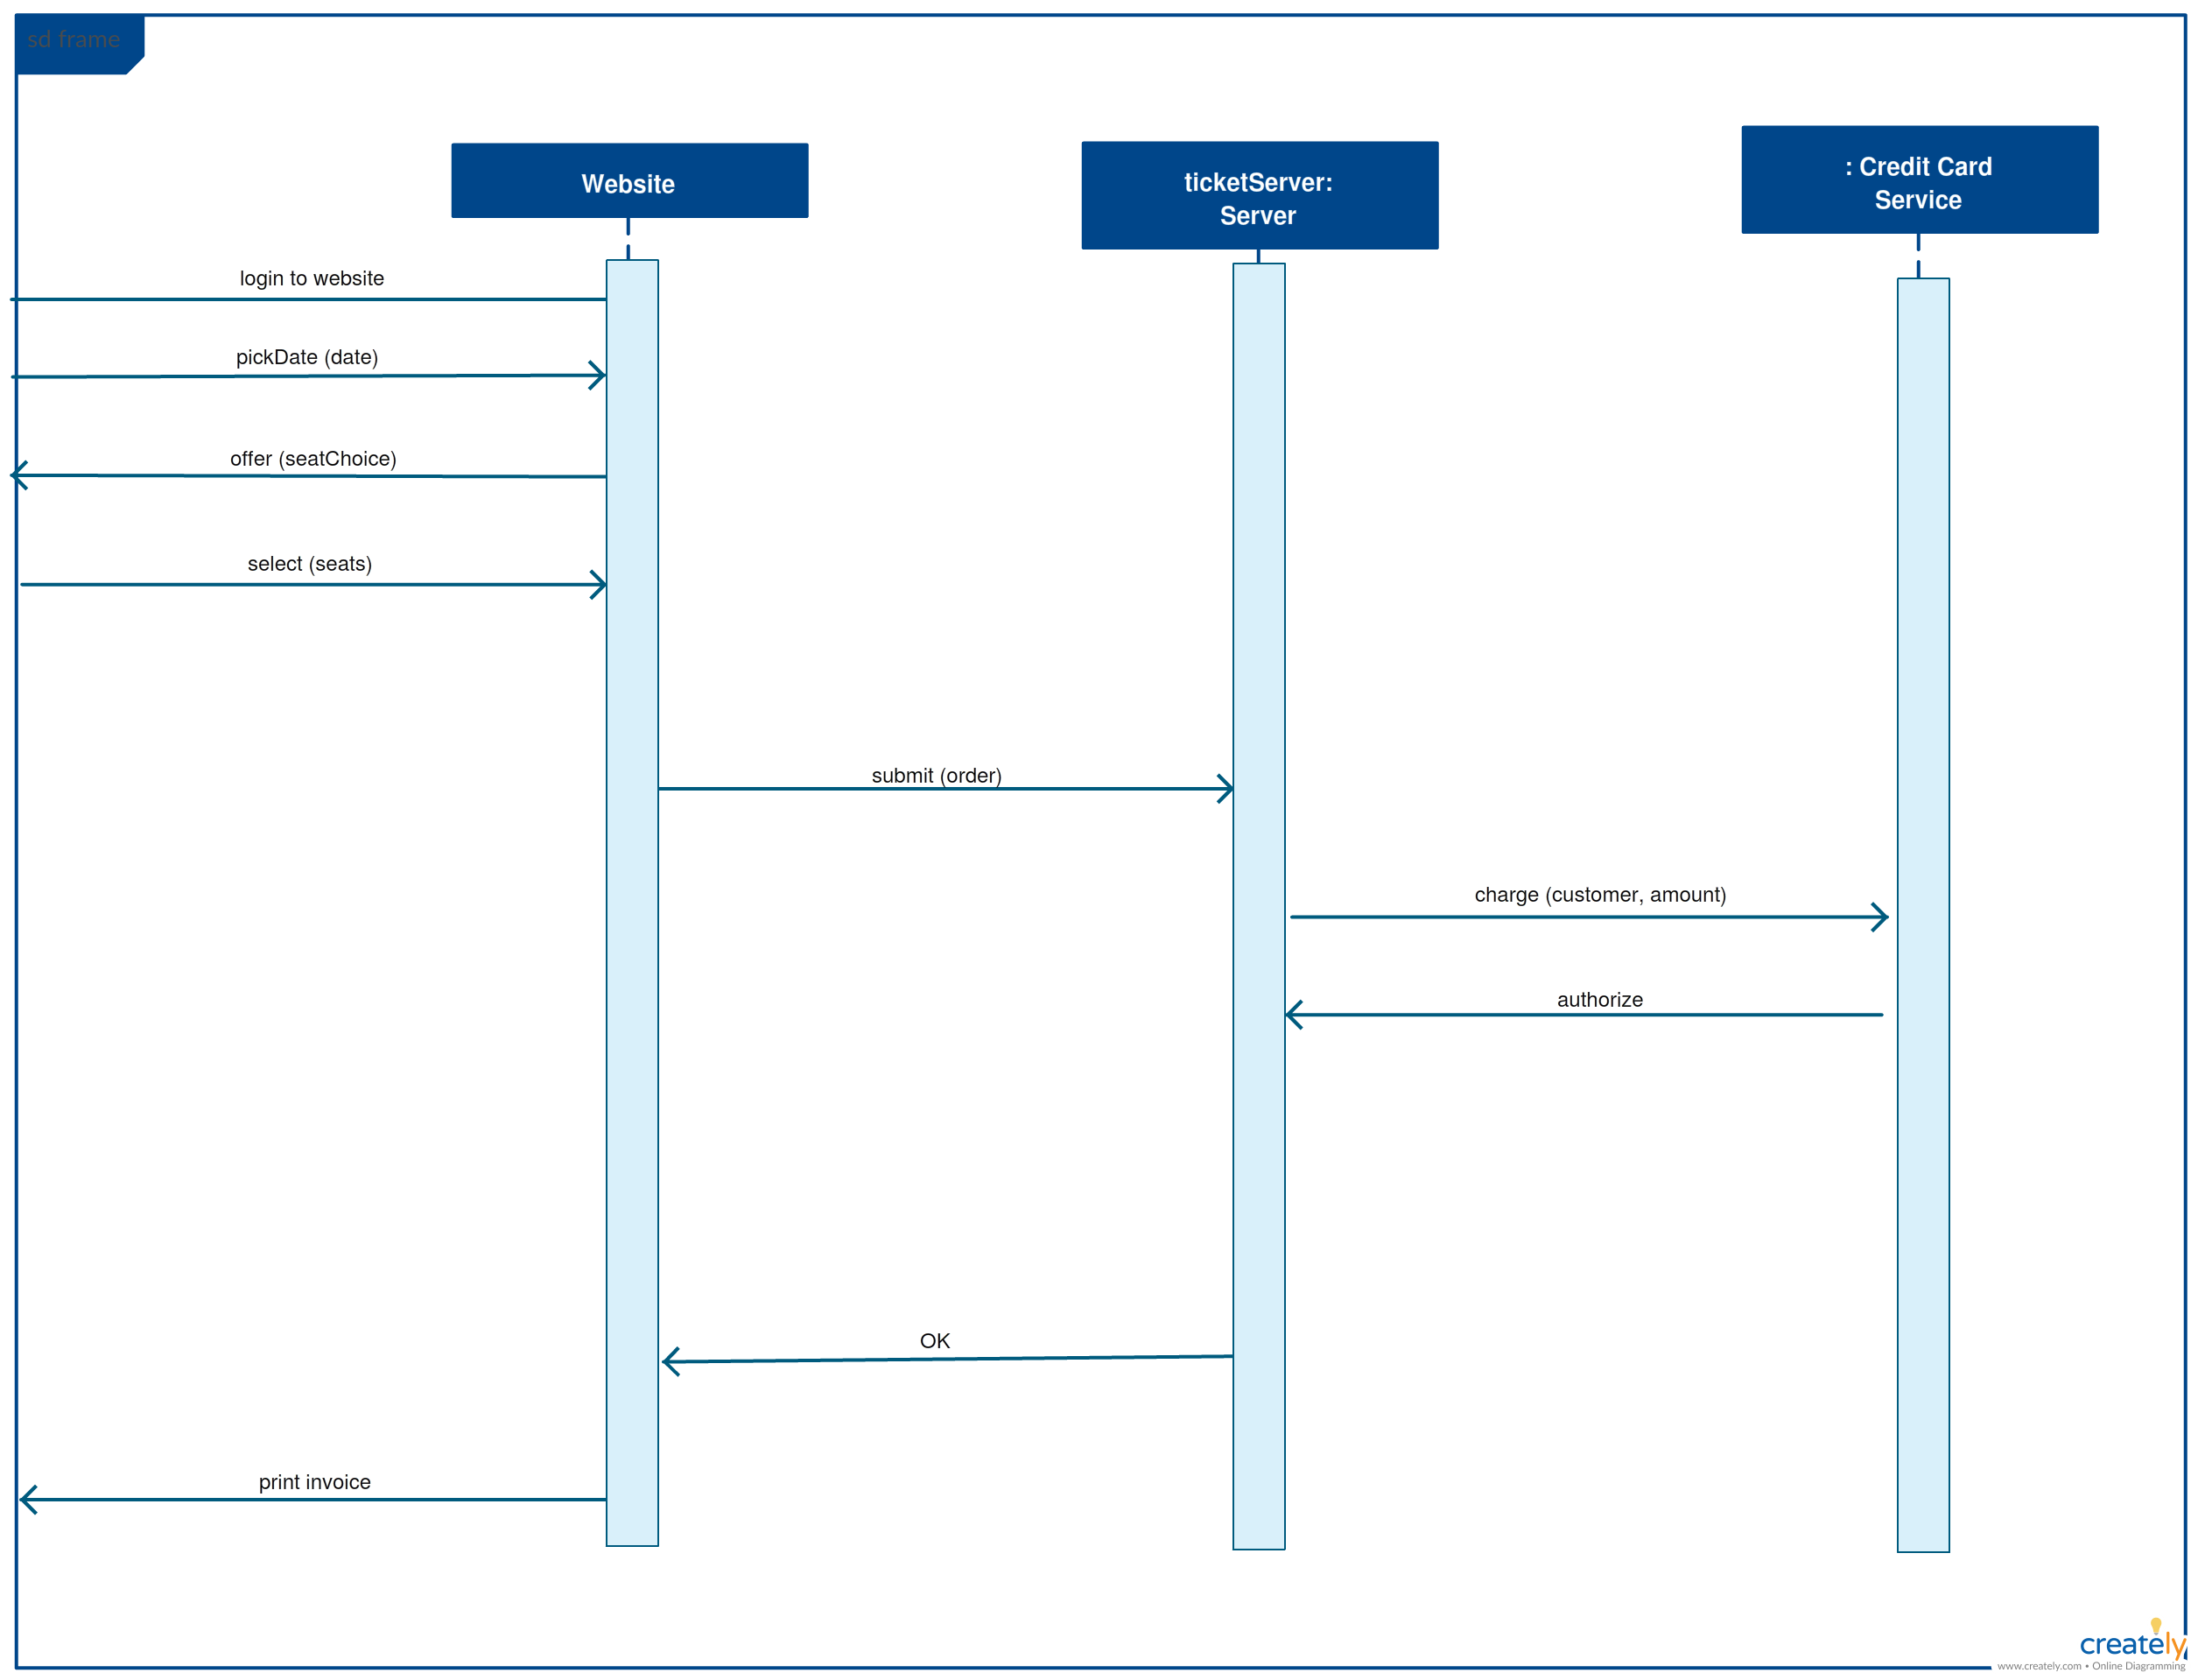 sequence diagram template for a bus reservation system click on the image to use this as a template [ 2511 x 1919 Pixel ]